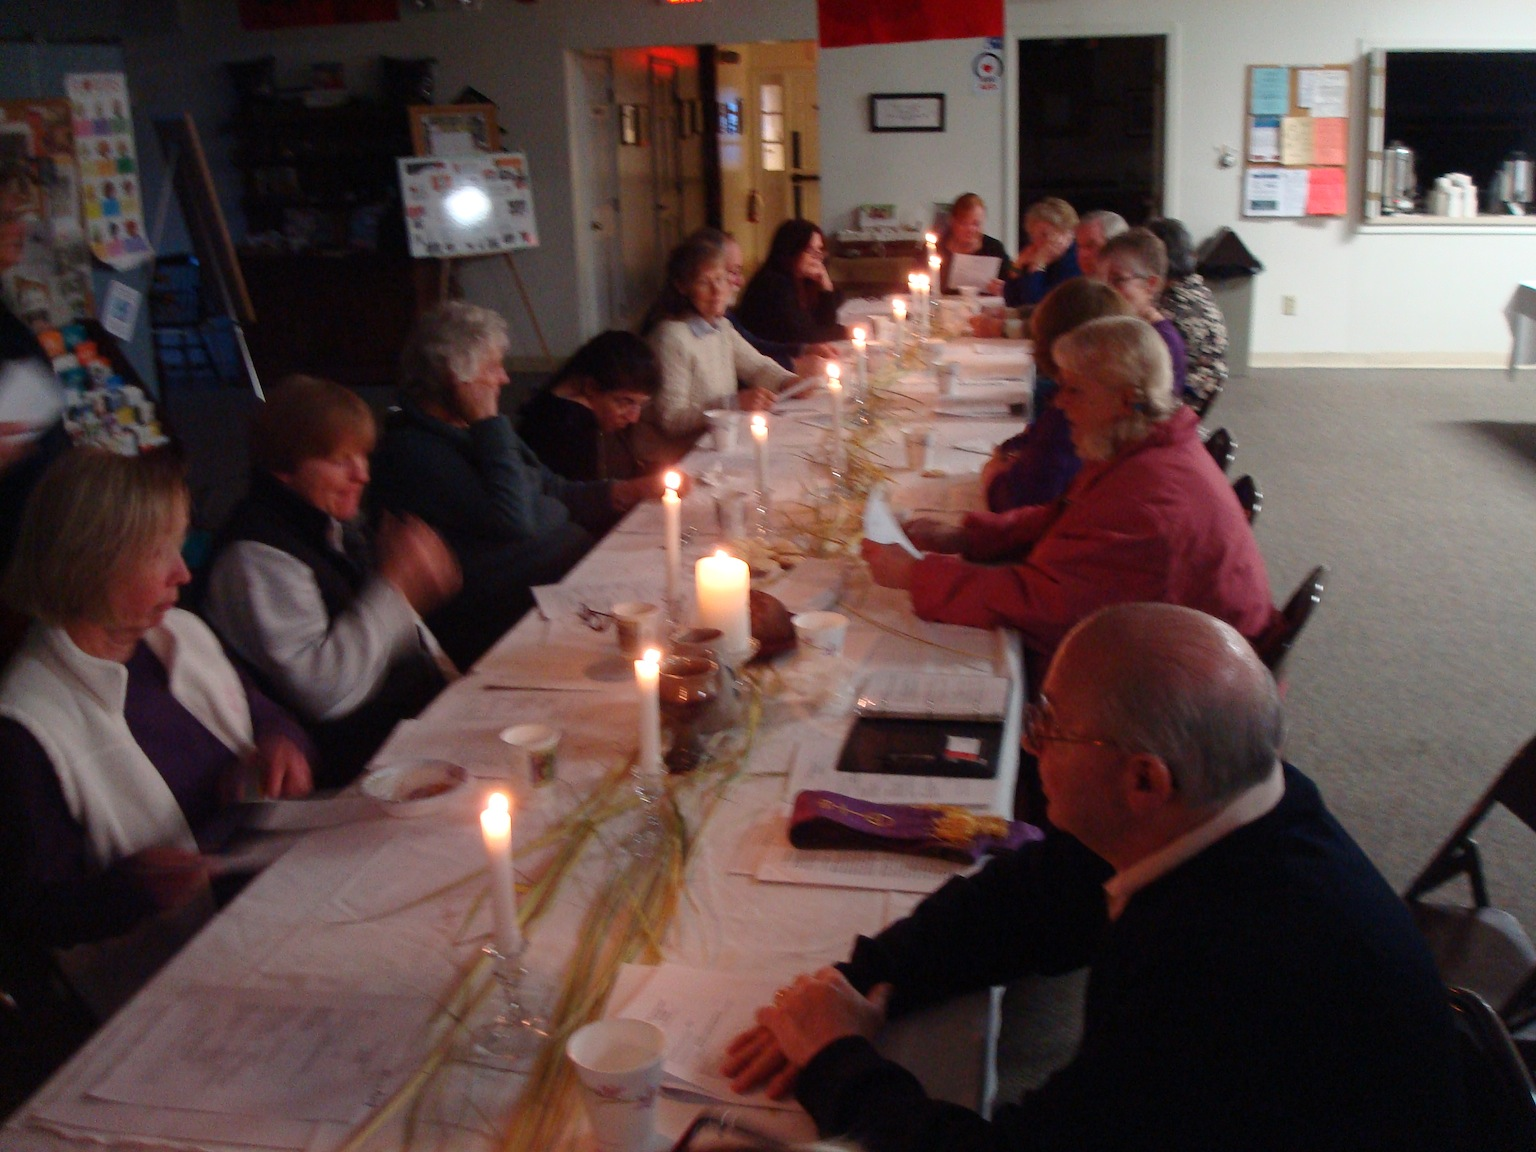 images/stories/HeaderImages/Frame2/LentenCommSupper2012.JPG